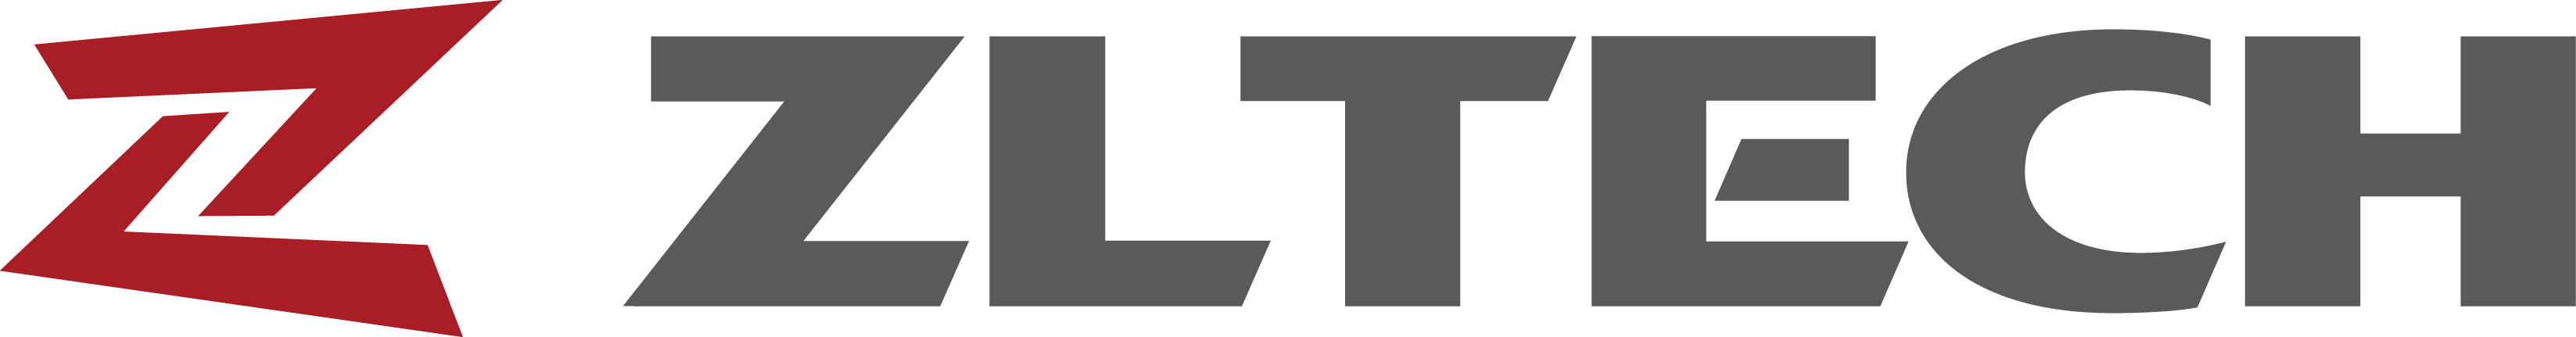 ZL Logo - Large (11 in).png